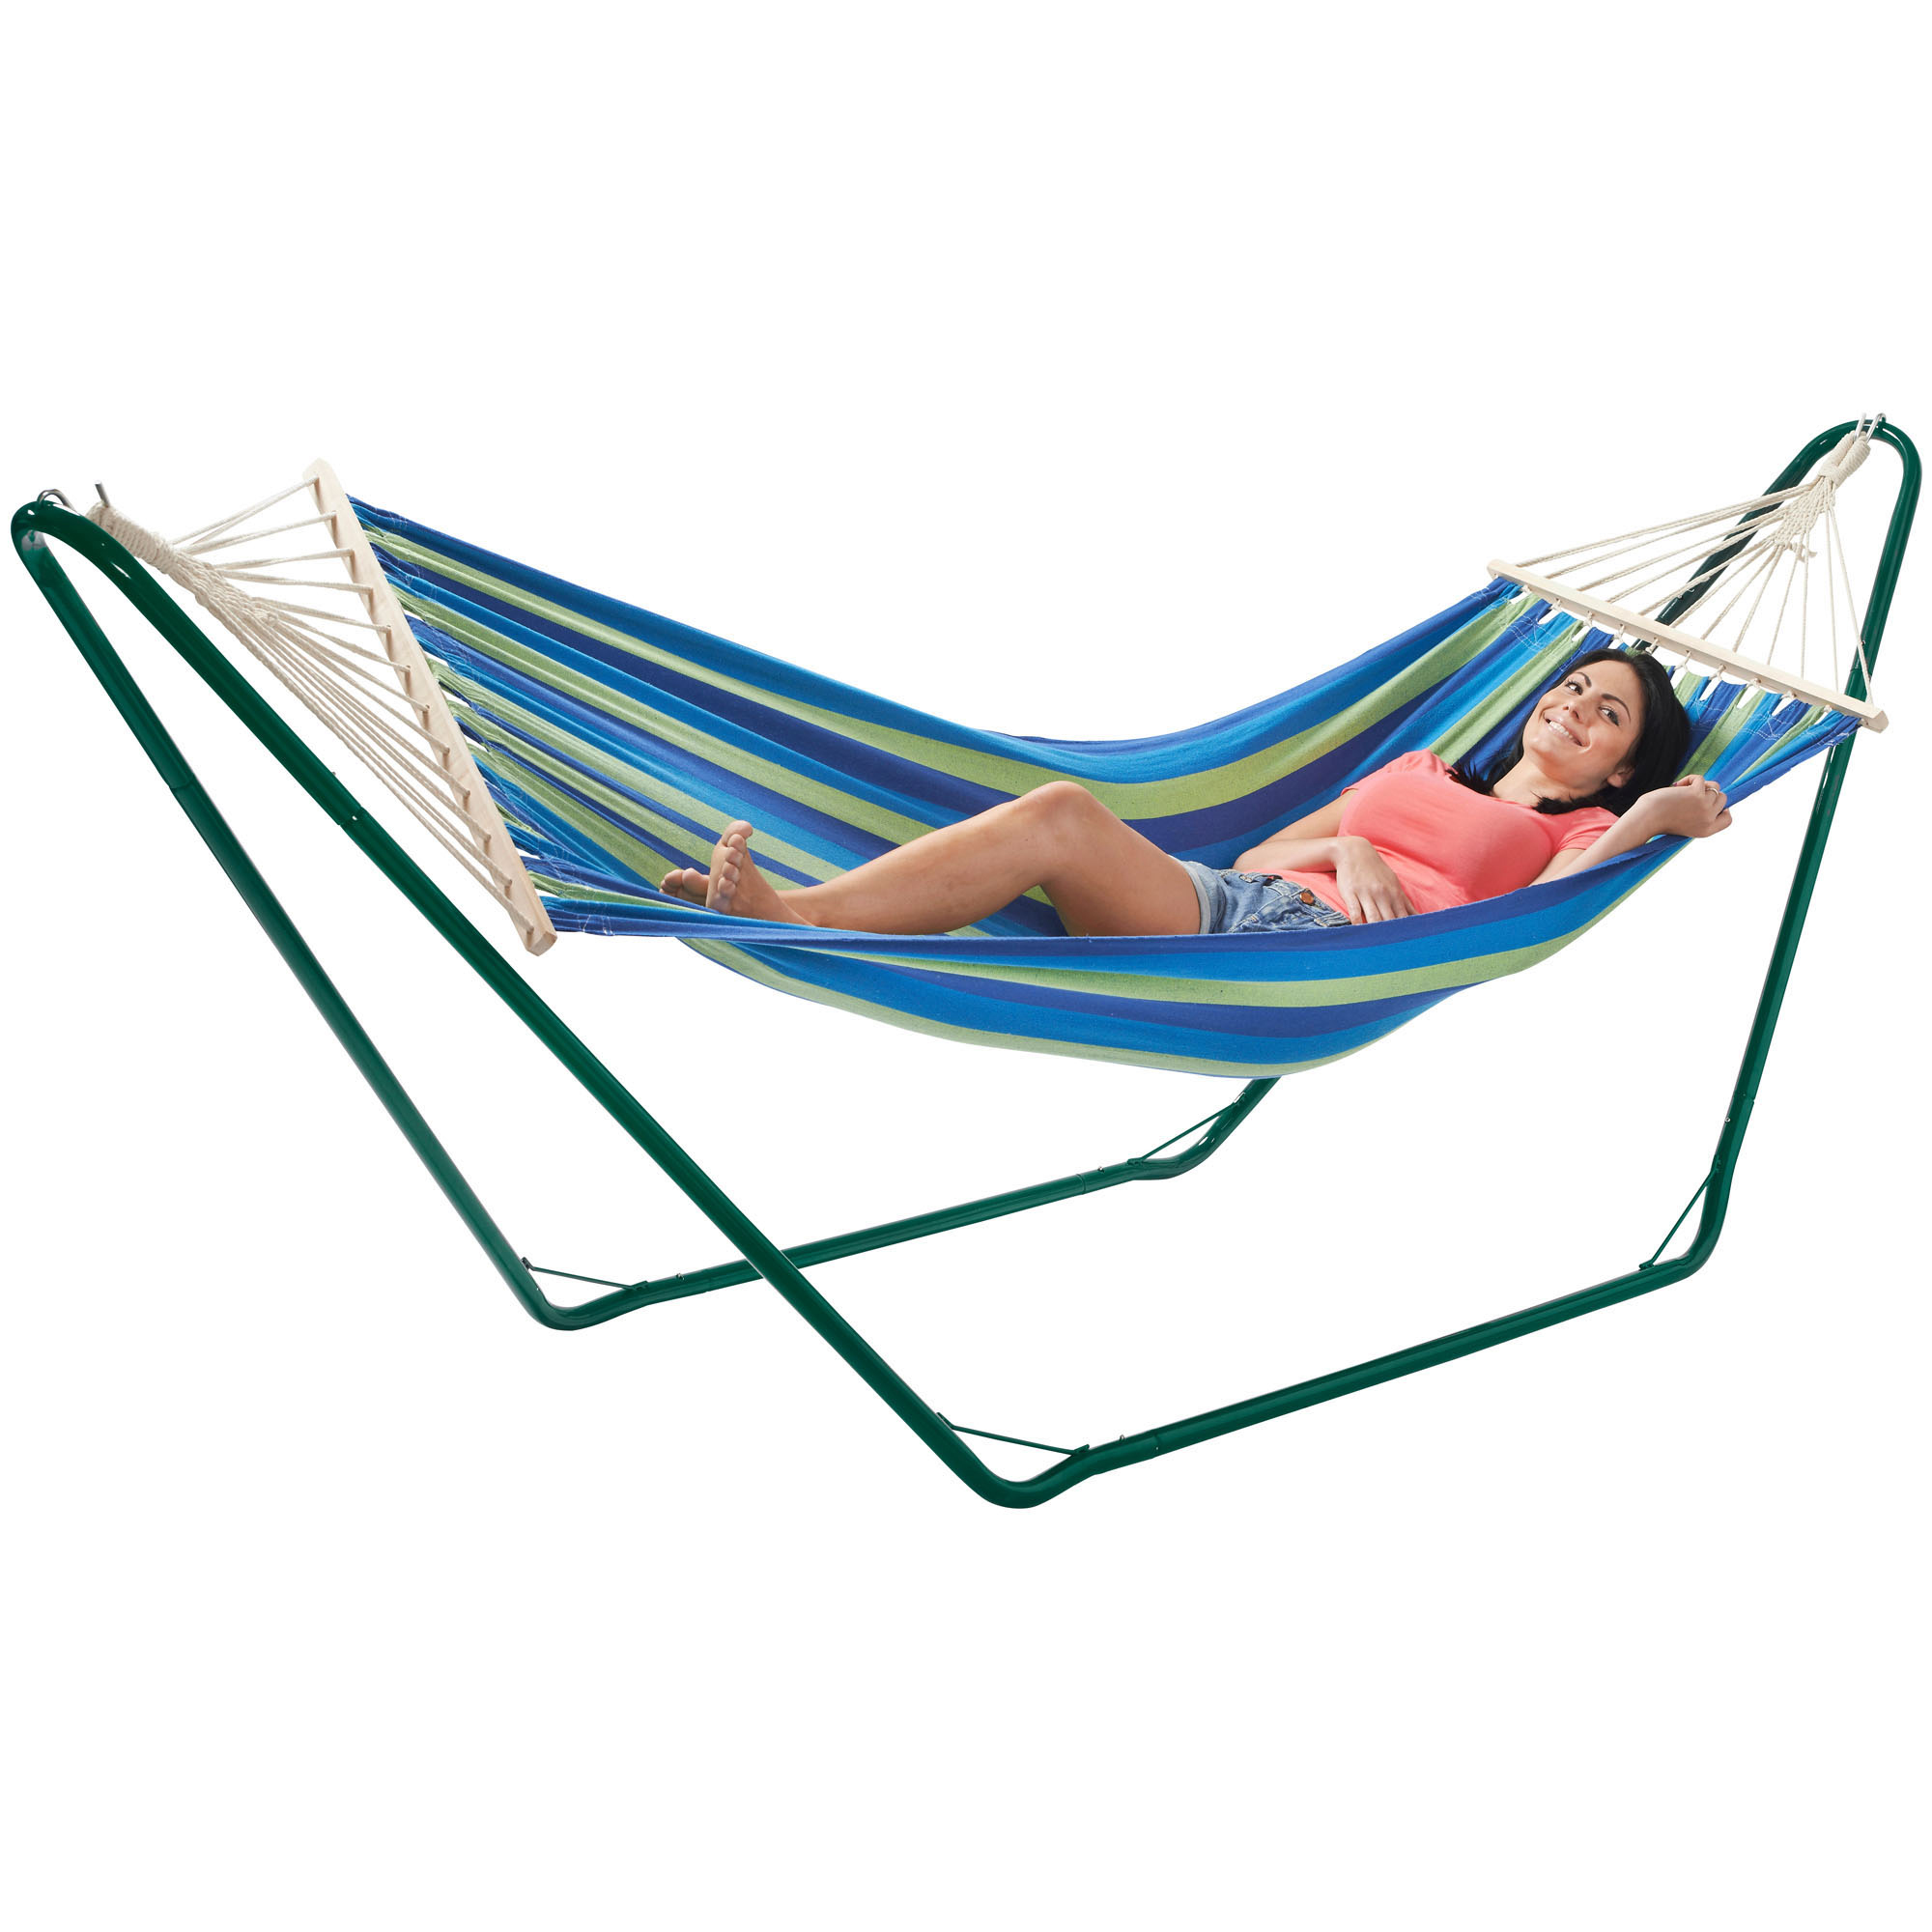 Patio Hammock: VonHaus Luxury Free Standing Swinging Garden Hammock With